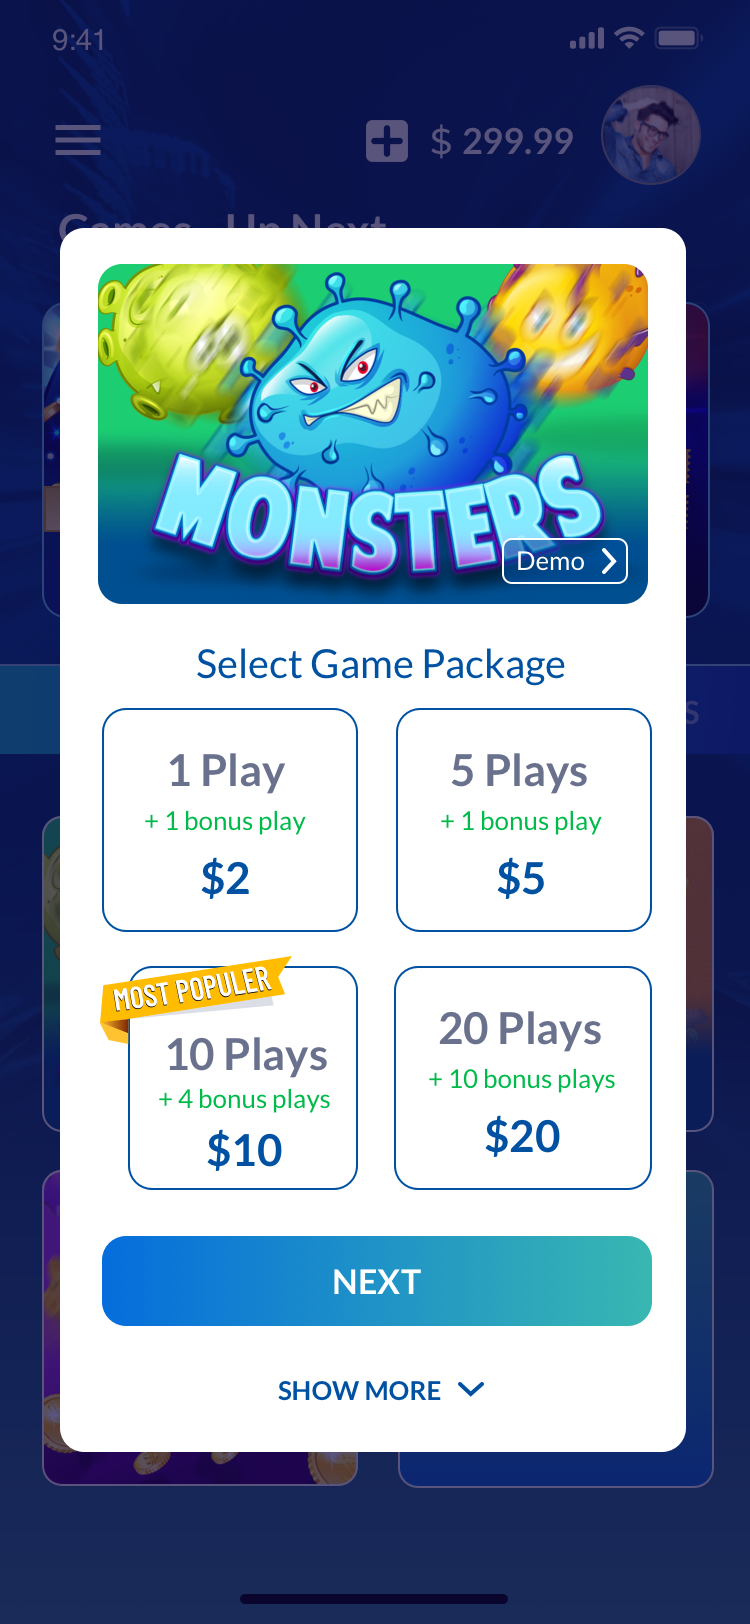 New pages for New Games within the App